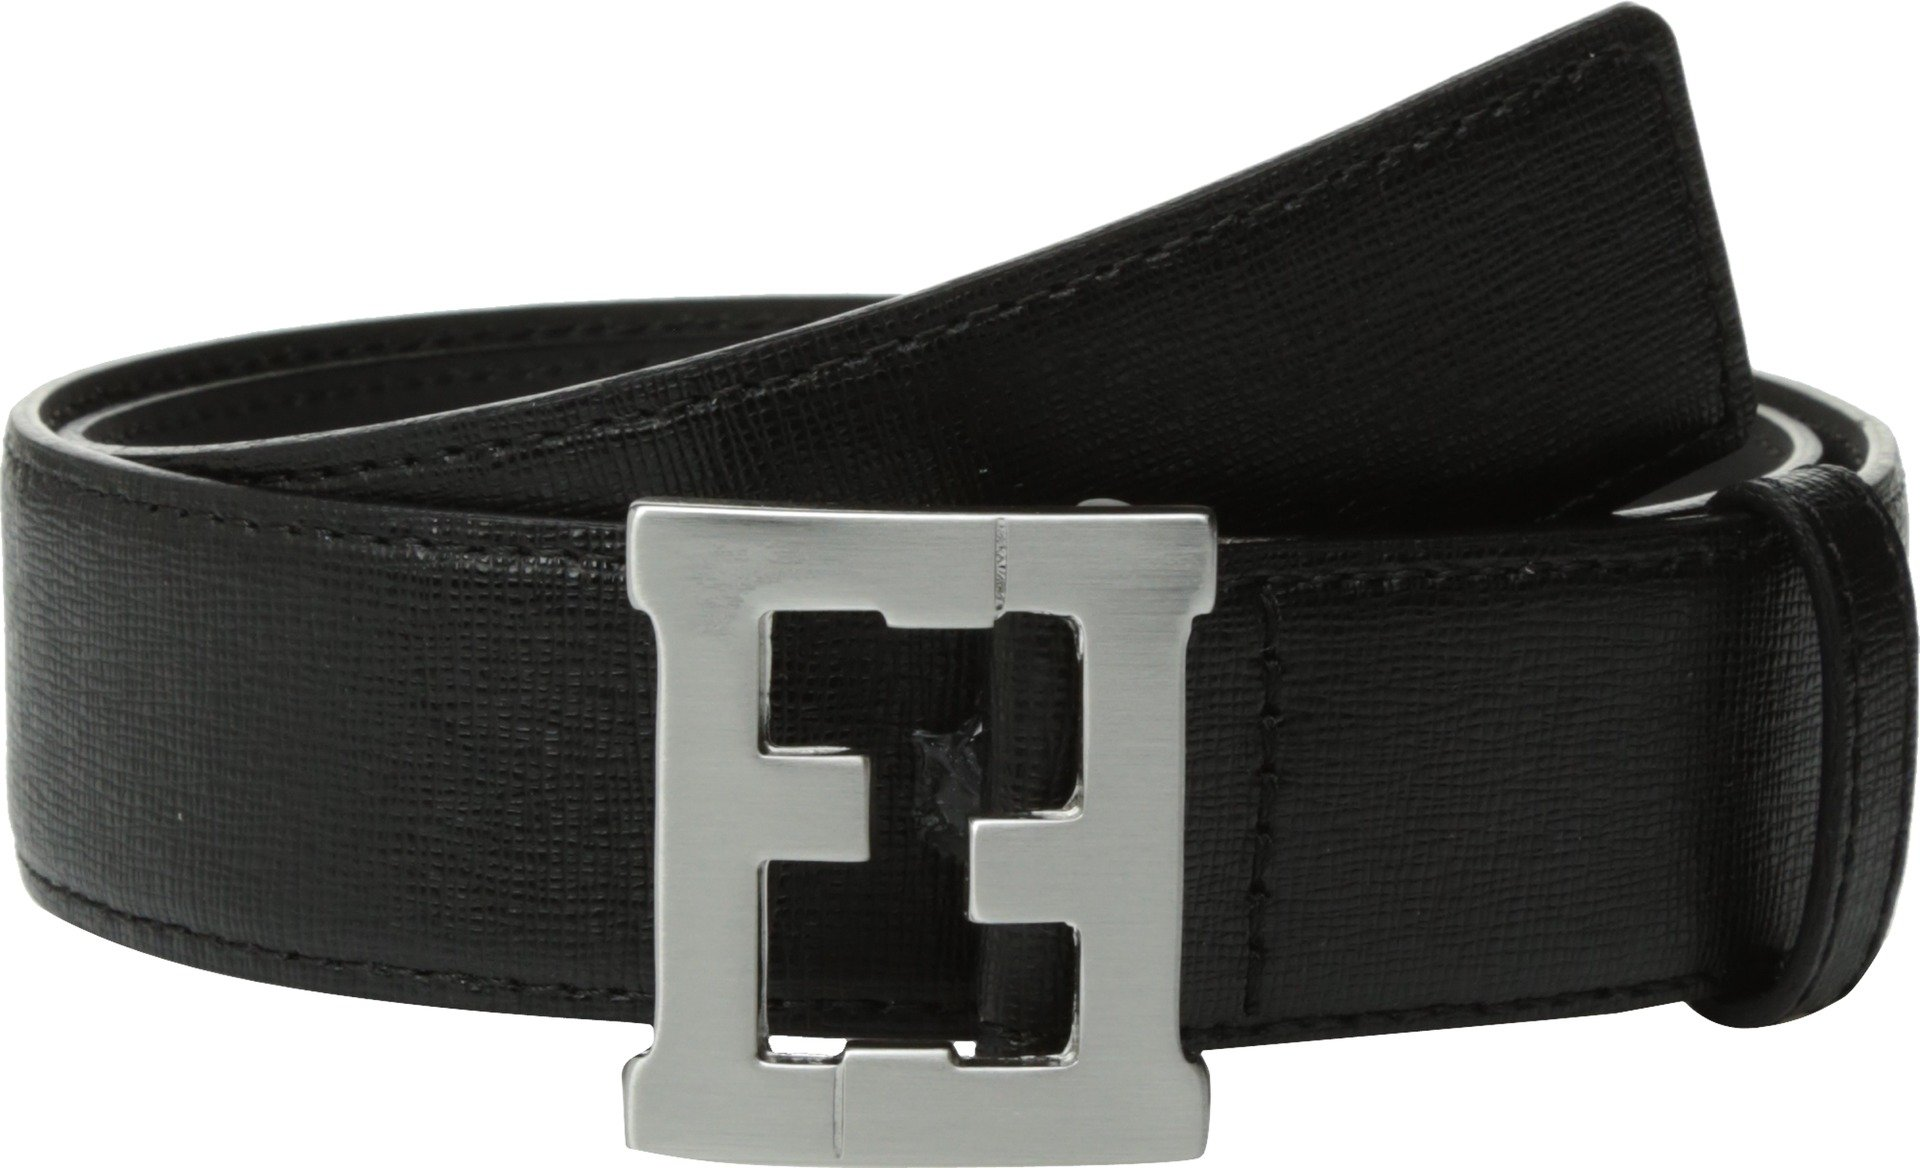 Fendi Kids  Baby Boy's Logo Buckle Leather Belt (Toddler/Little Kids/Big Kids) Black 9 Years by Fendi Kids